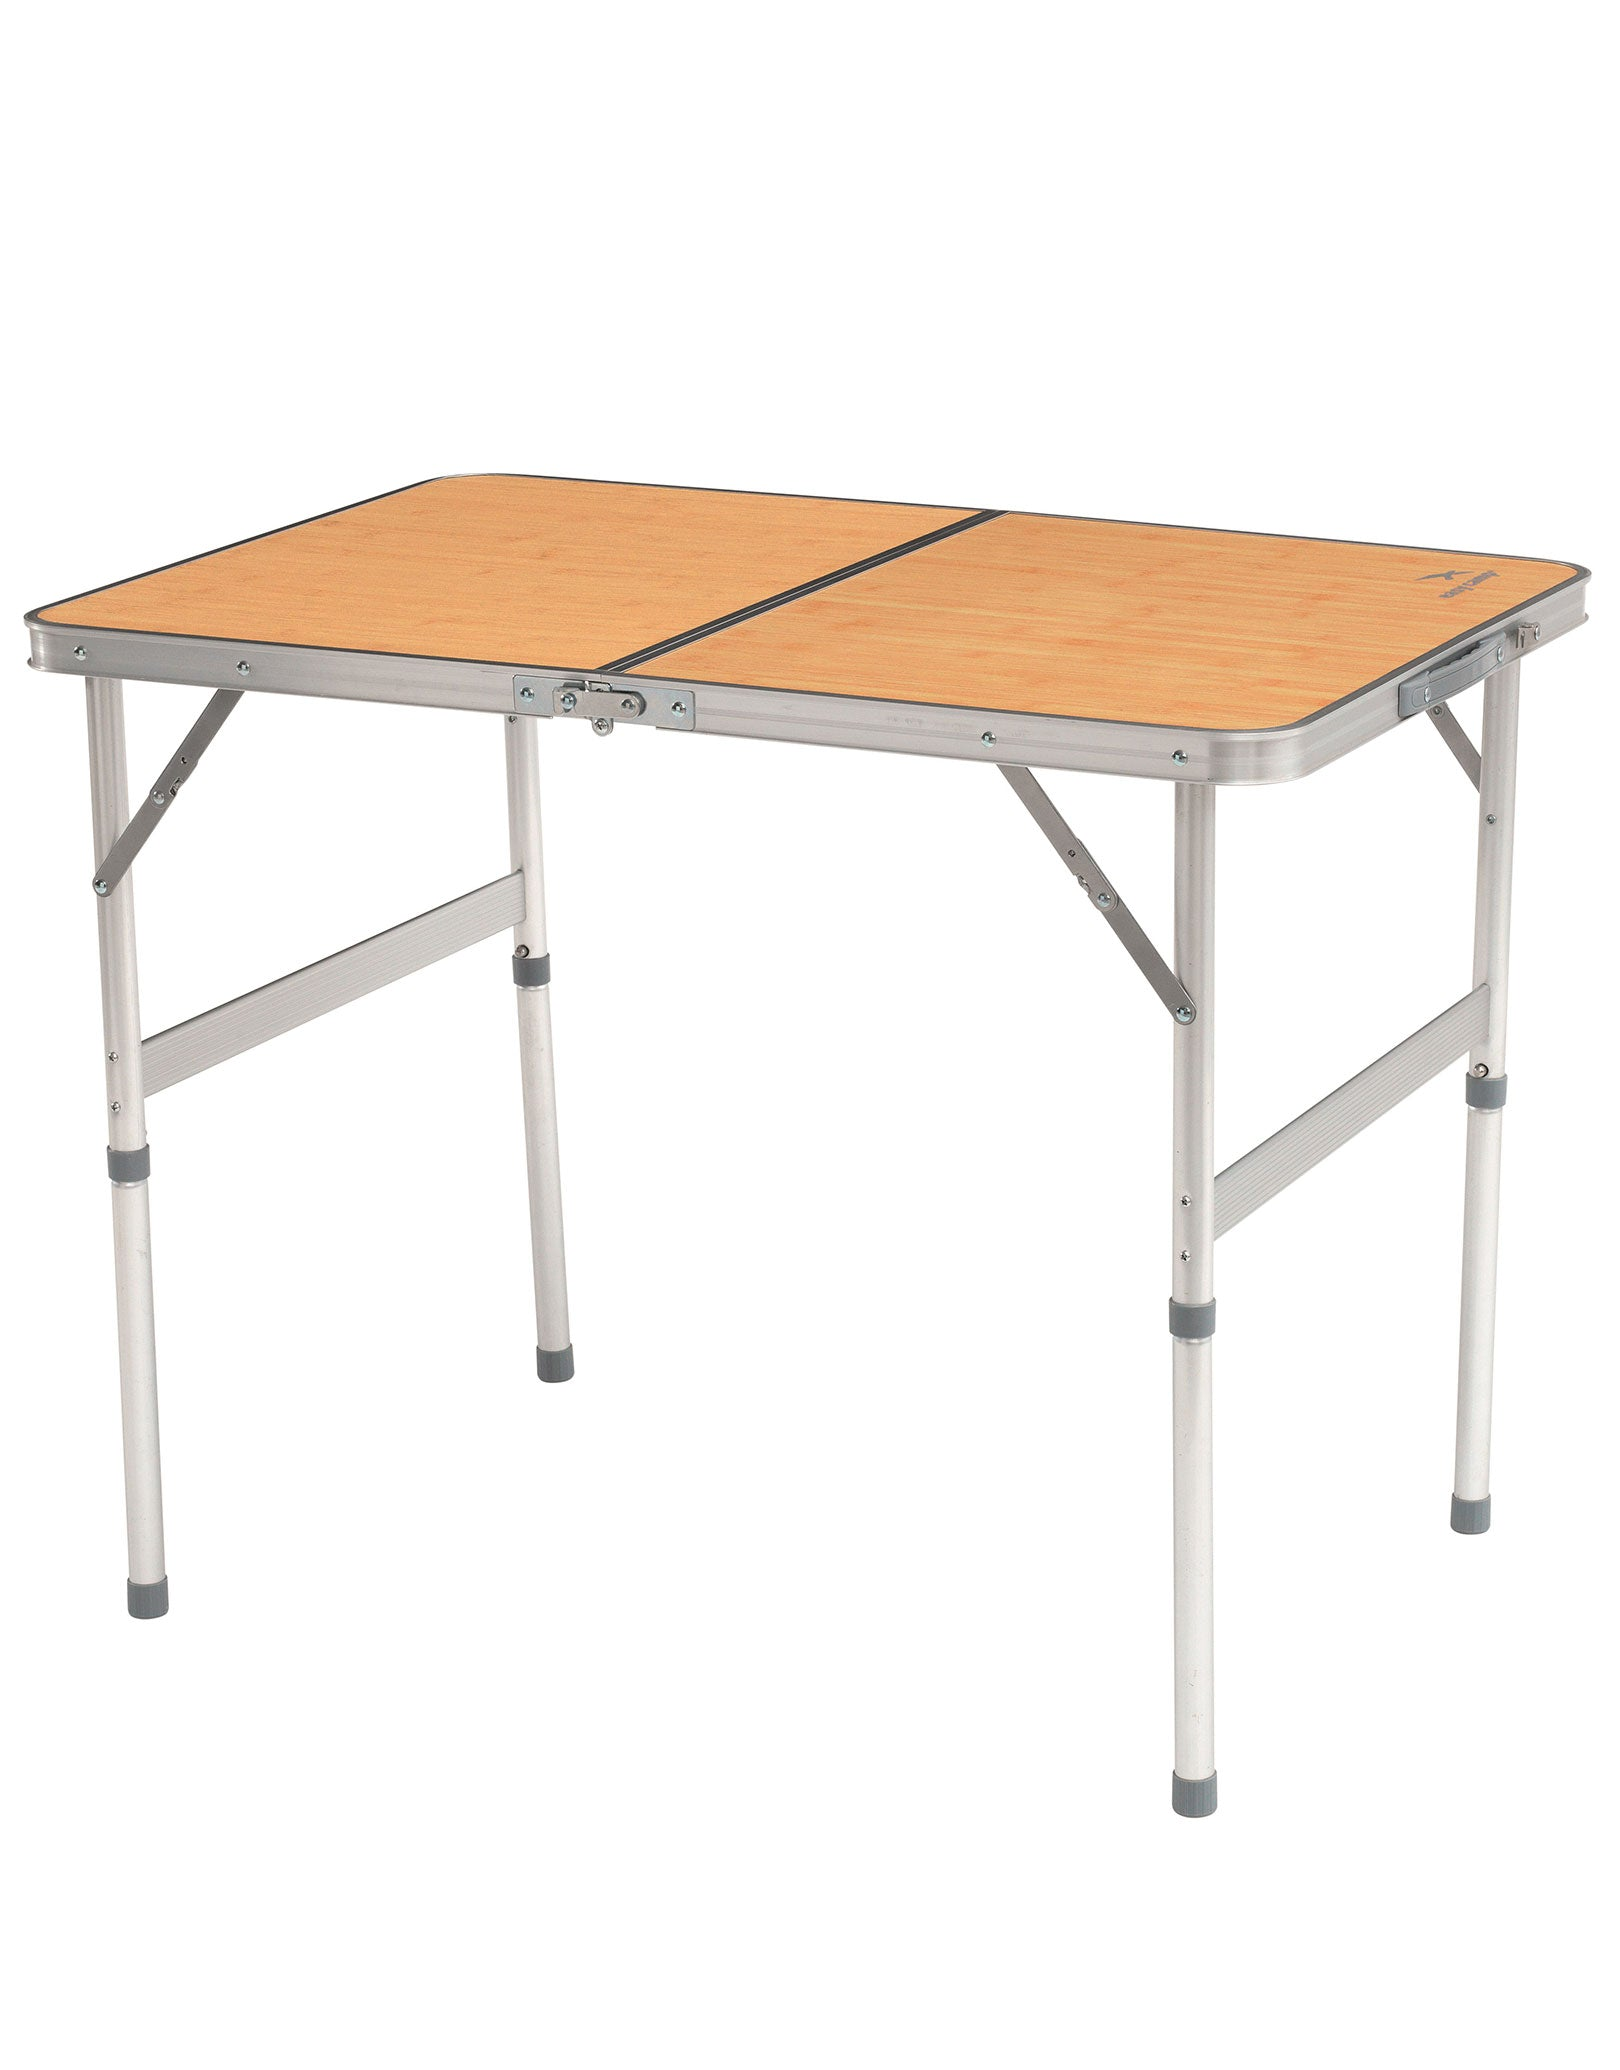 Image of Easy Camp Blain Camping Table